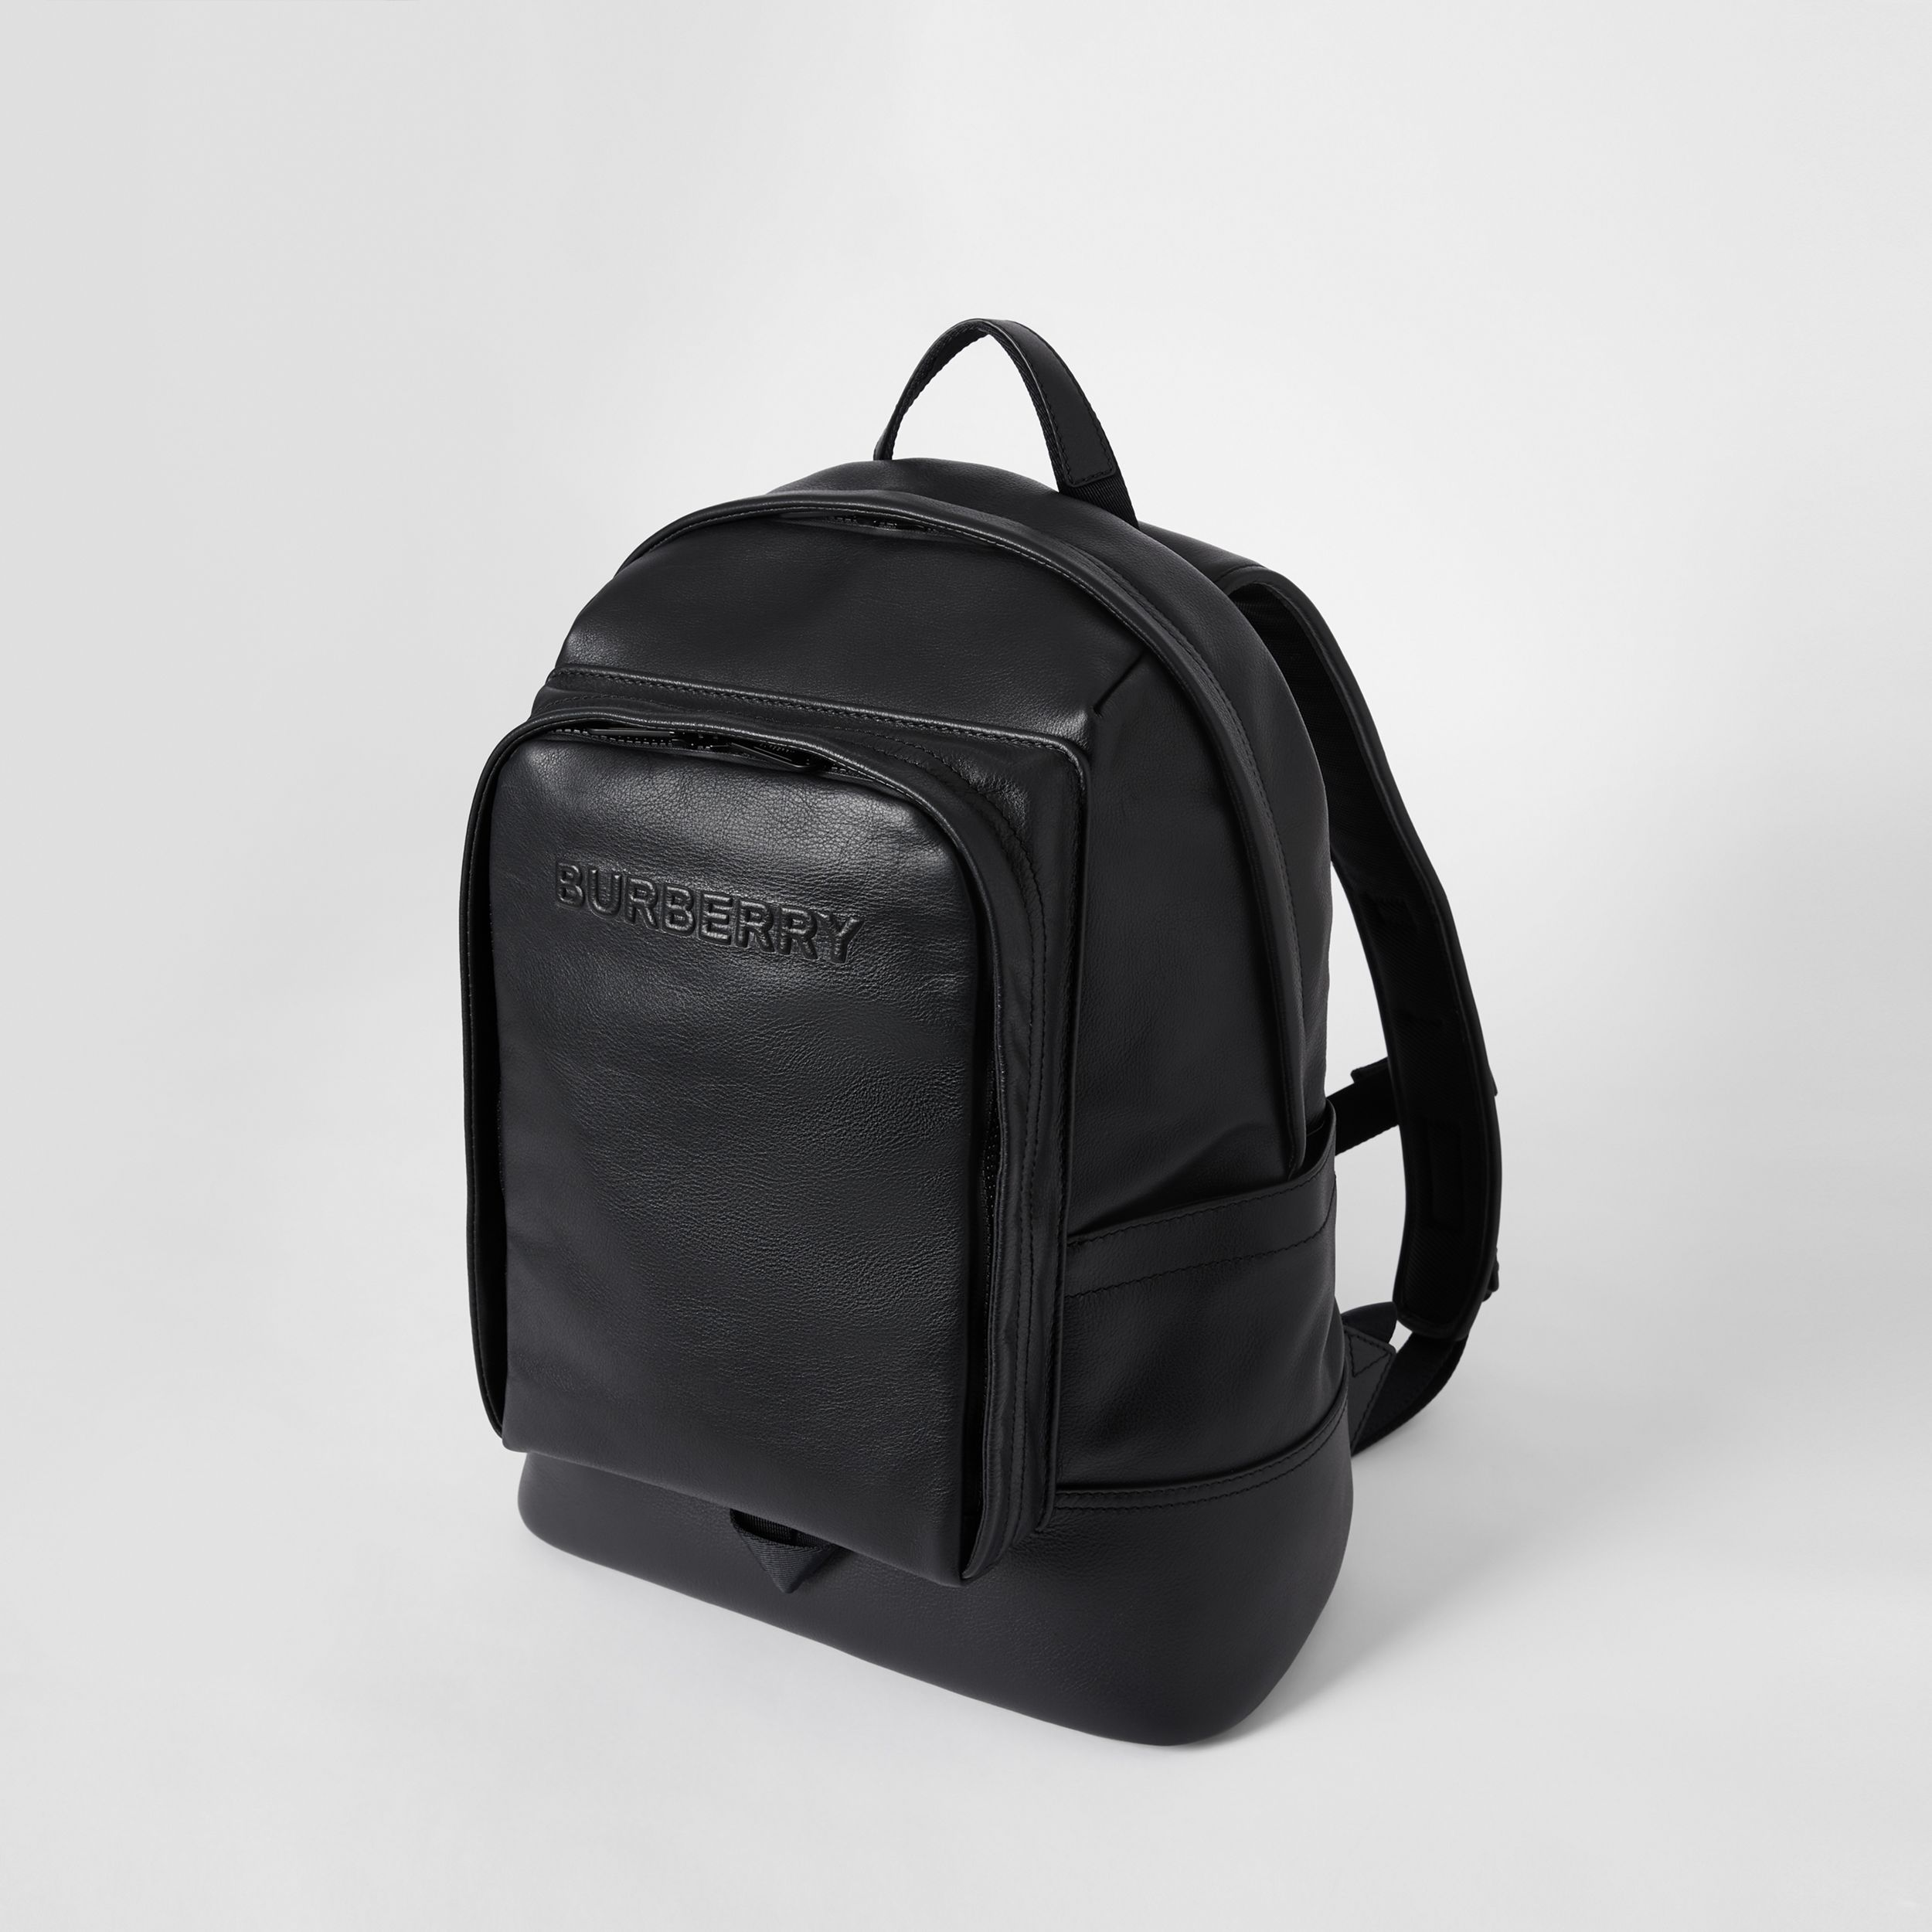 Large Logo Embossed Leather Backpack in Black - Men | Burberry - 4